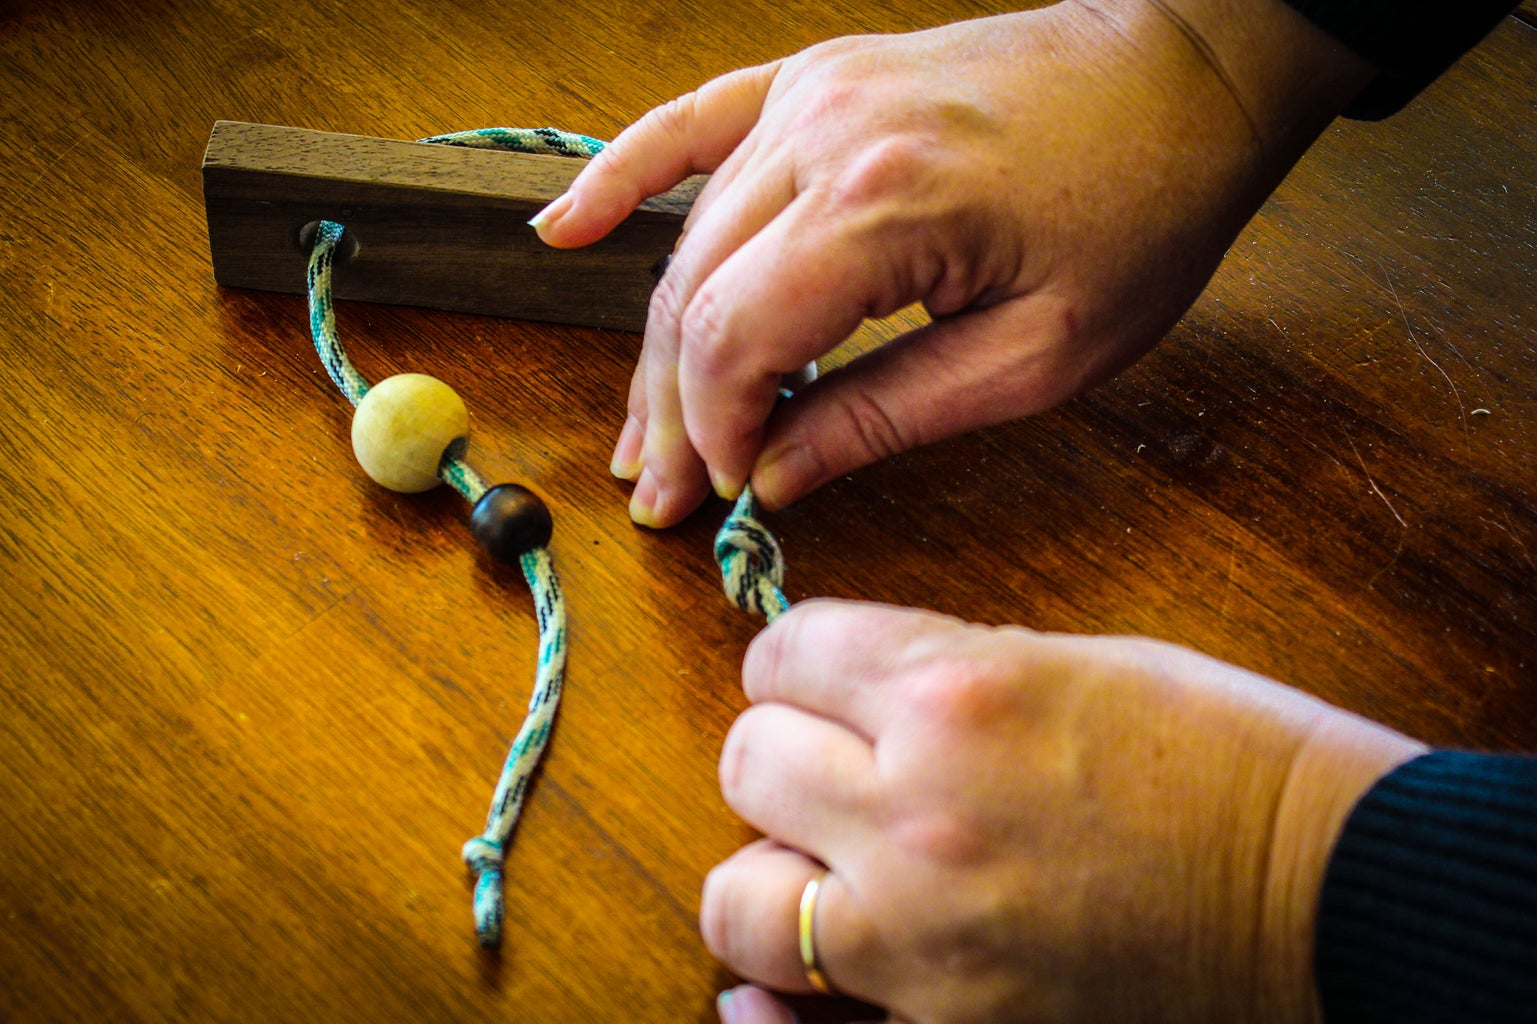 Tie Knots at the Ends of Rope